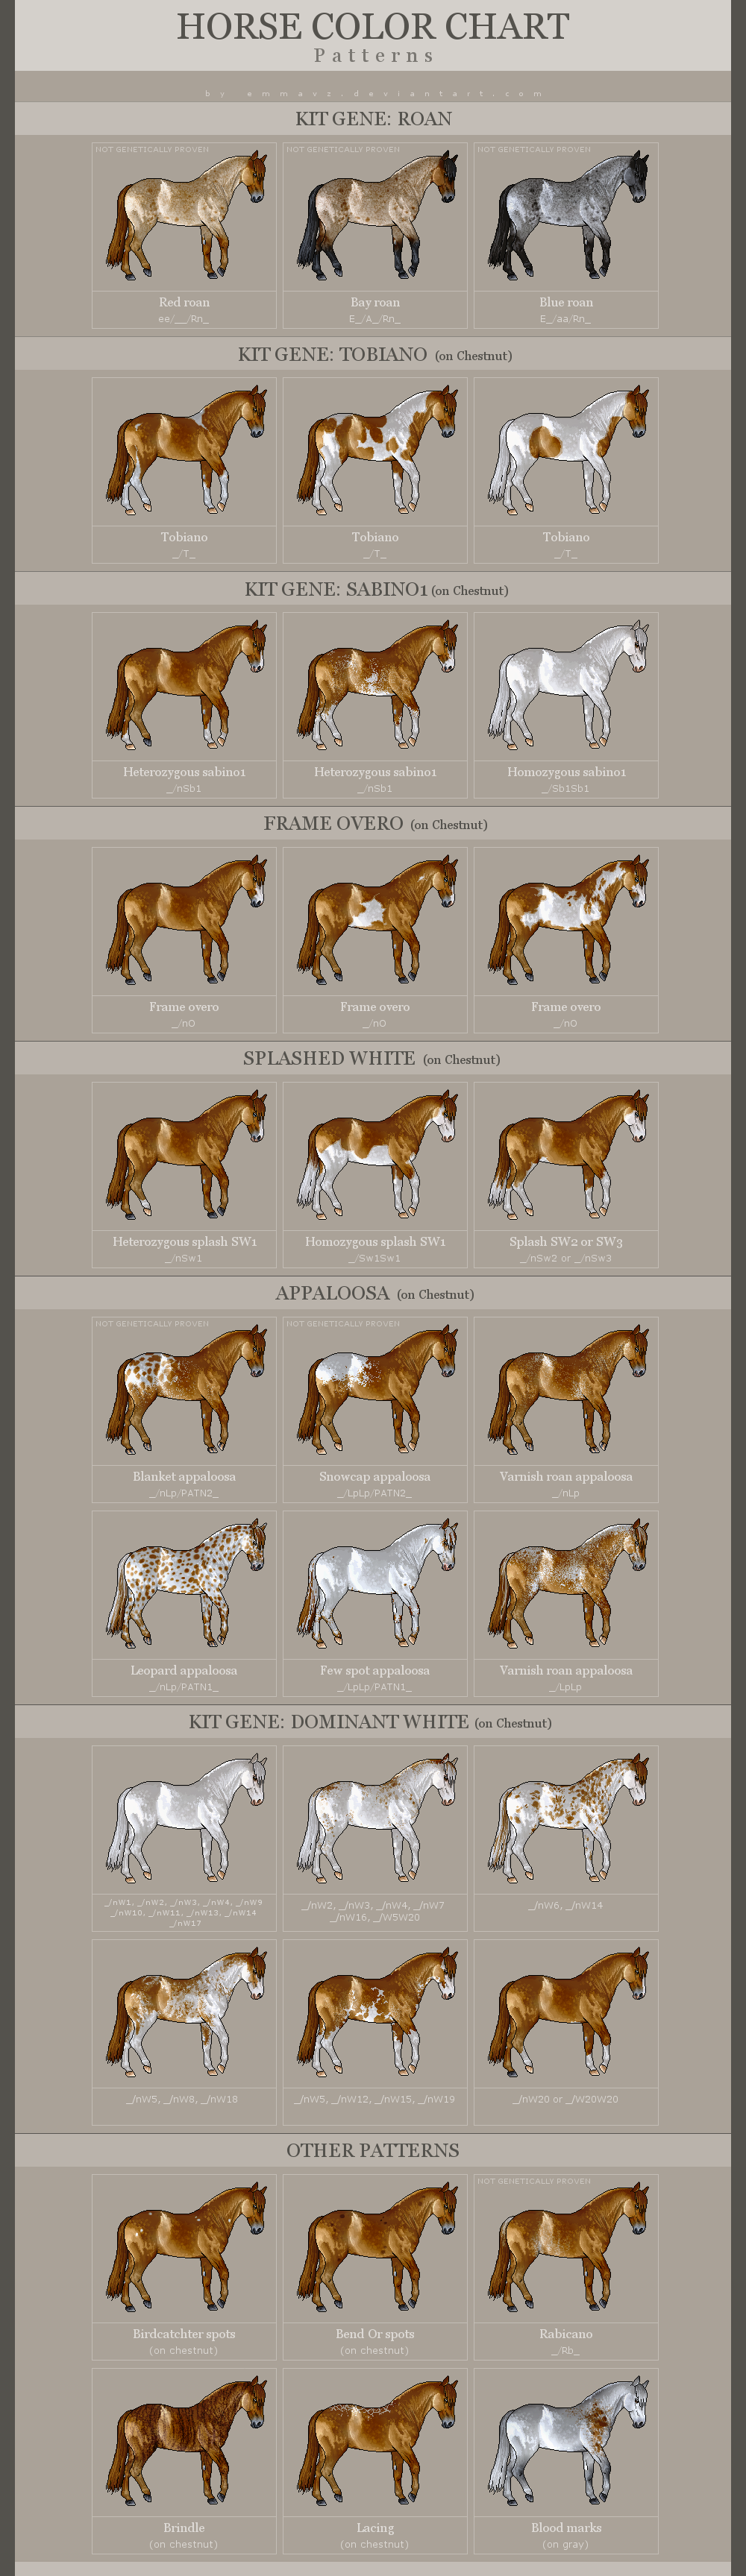 Horse color chart patterns updated by emmavz on deviantart horse color chart patterns updated by emmavz nvjuhfo Choice Image